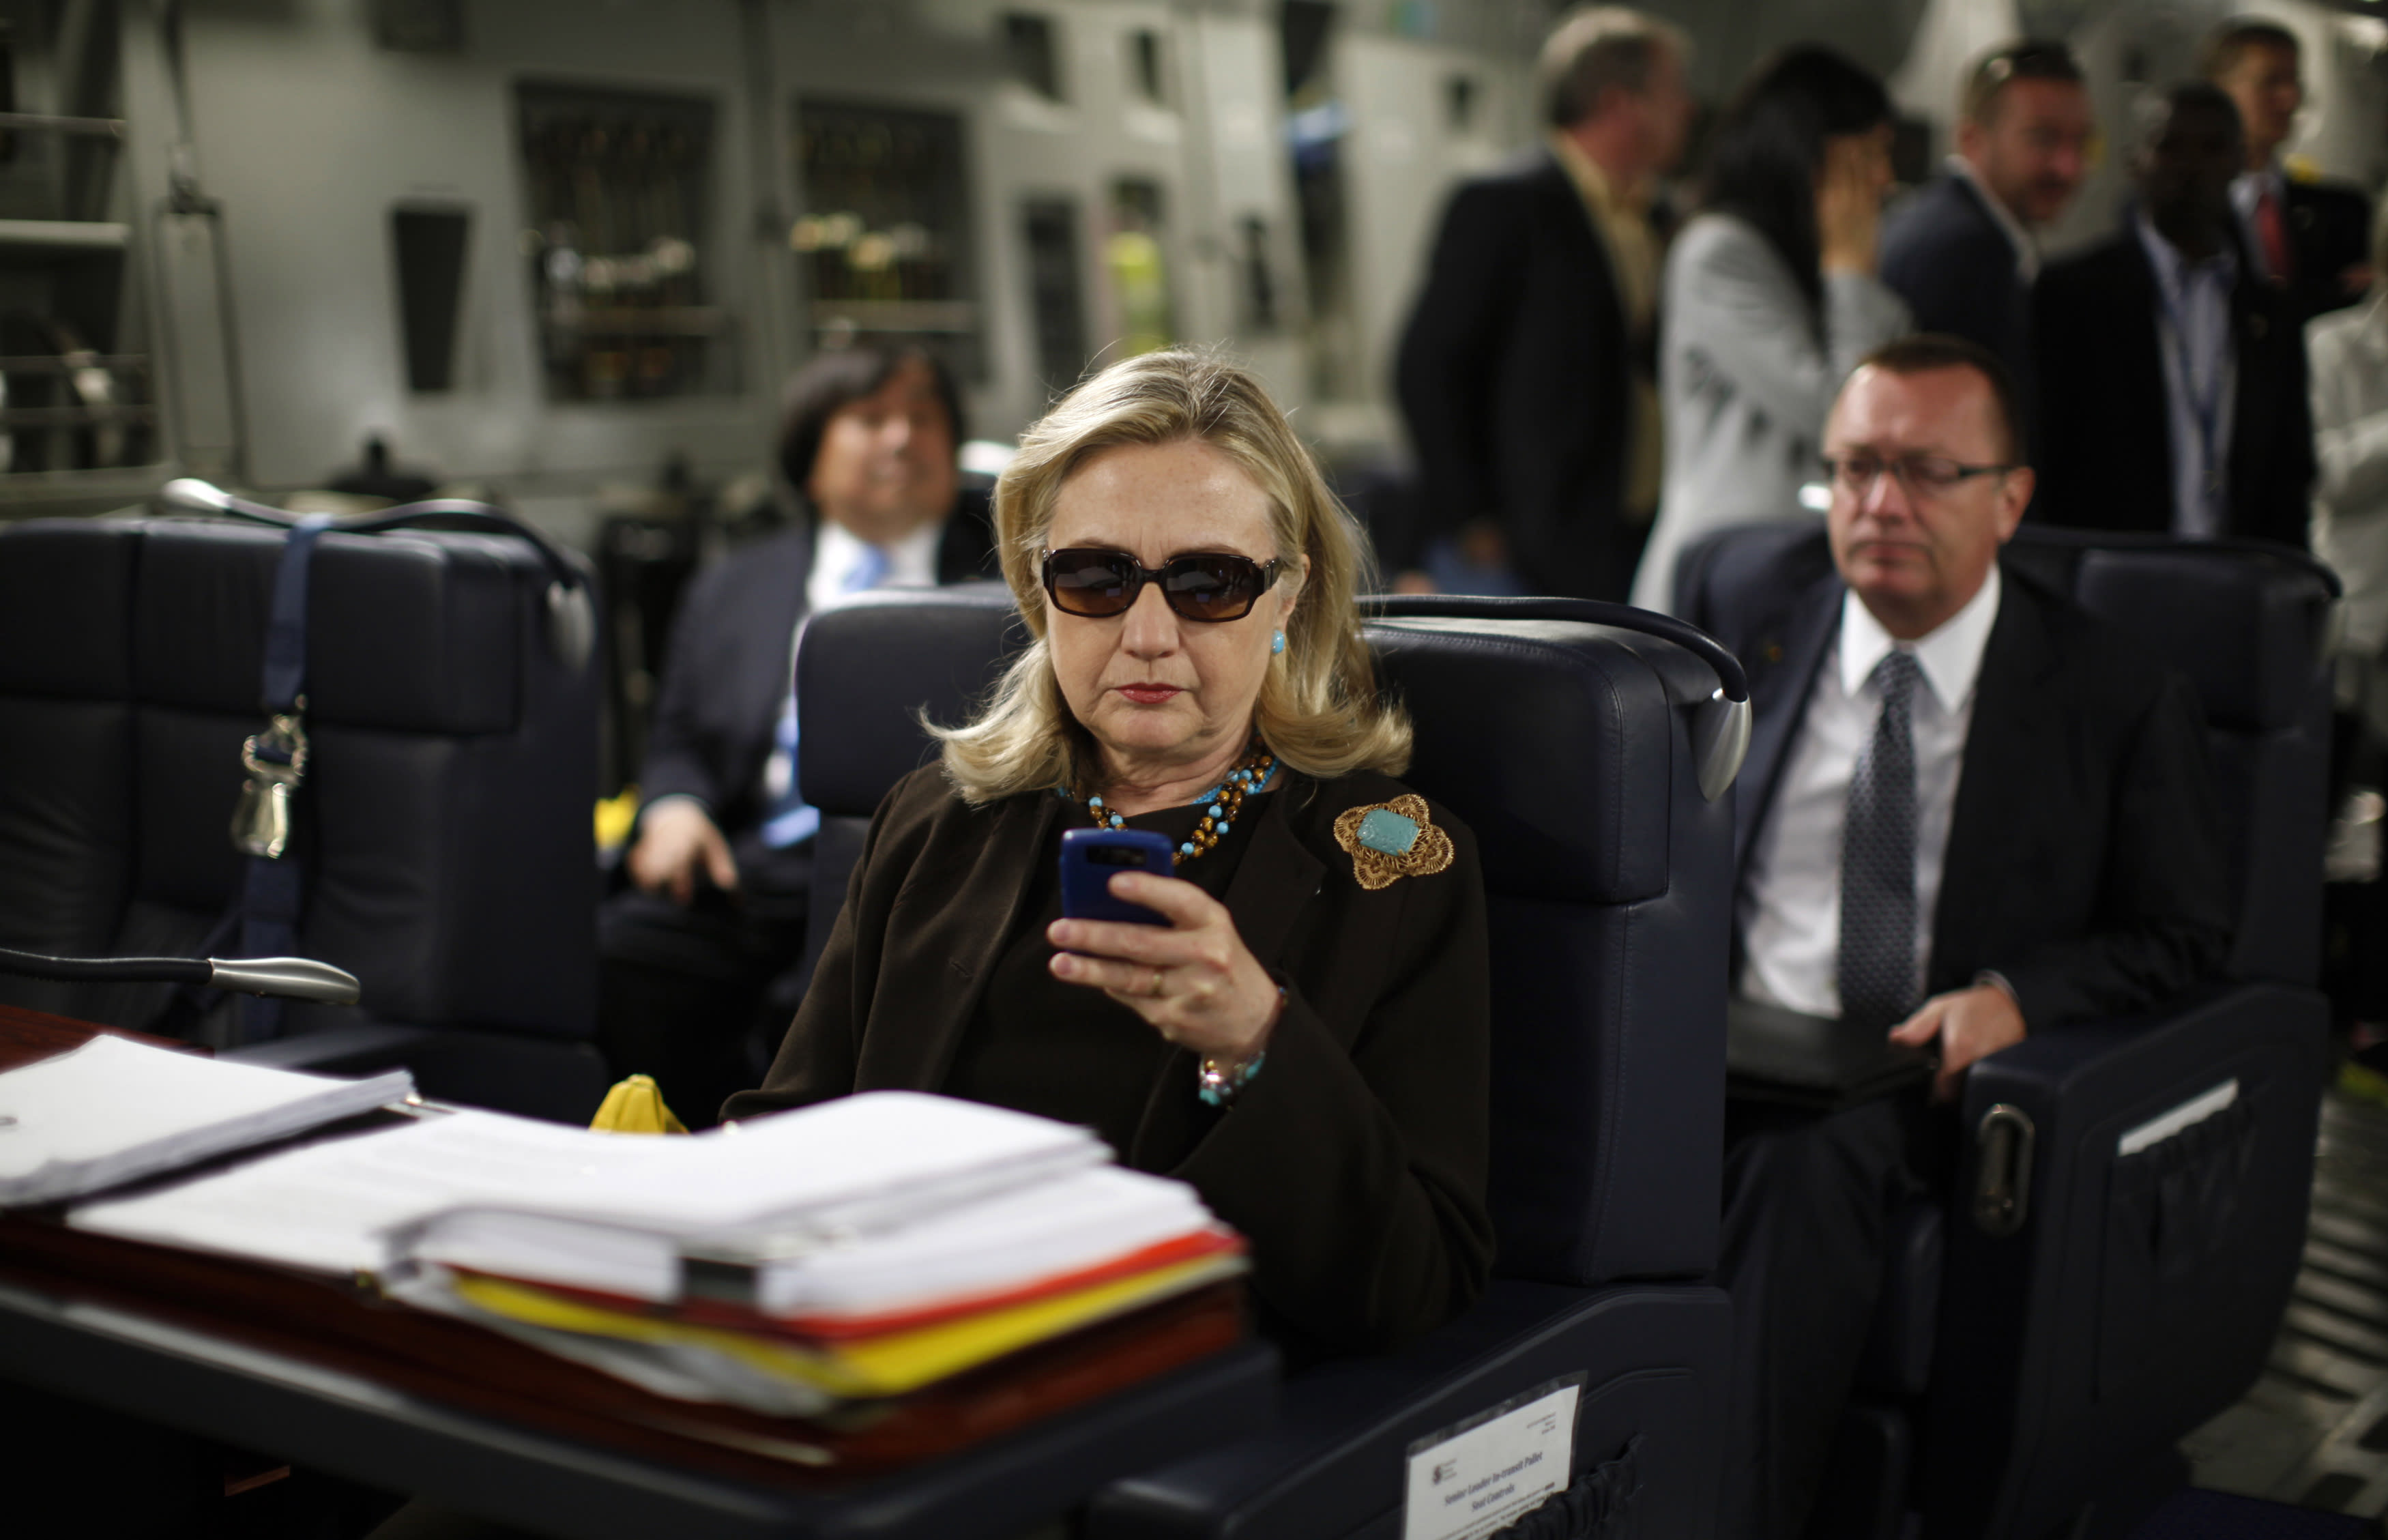 Clinton ran own computer system for her official emails